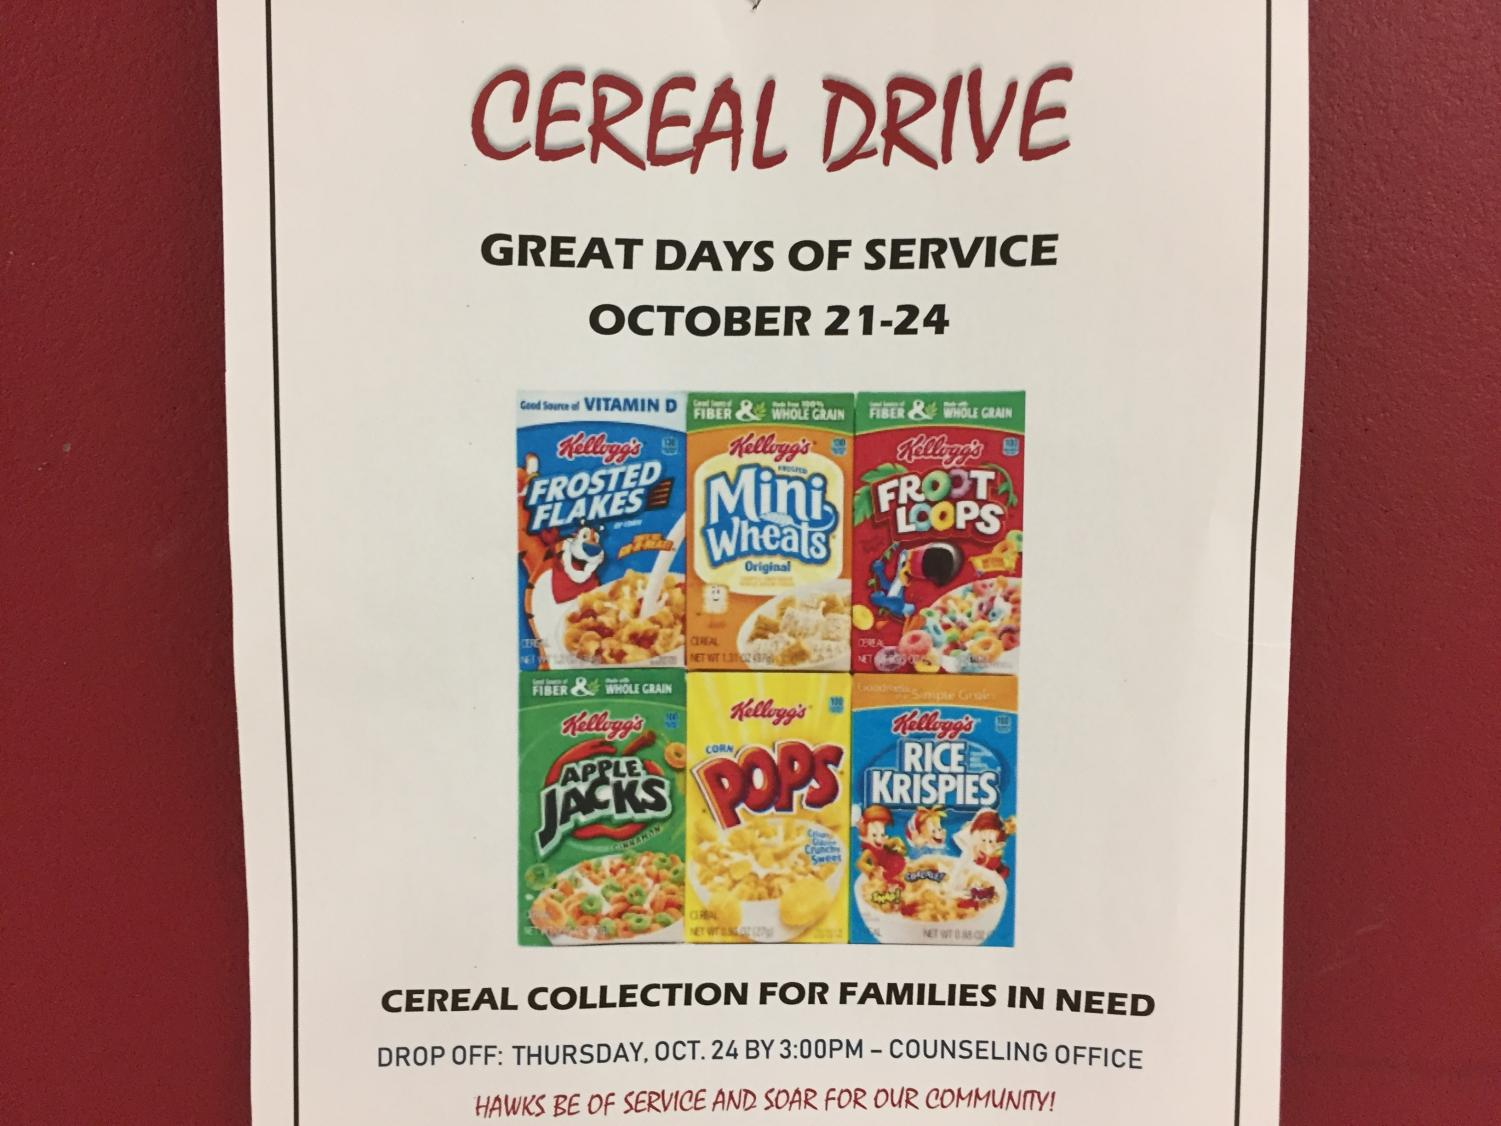 Mill Creek Cereal Drive poster advertised on bulletin board outside of C100 hallway